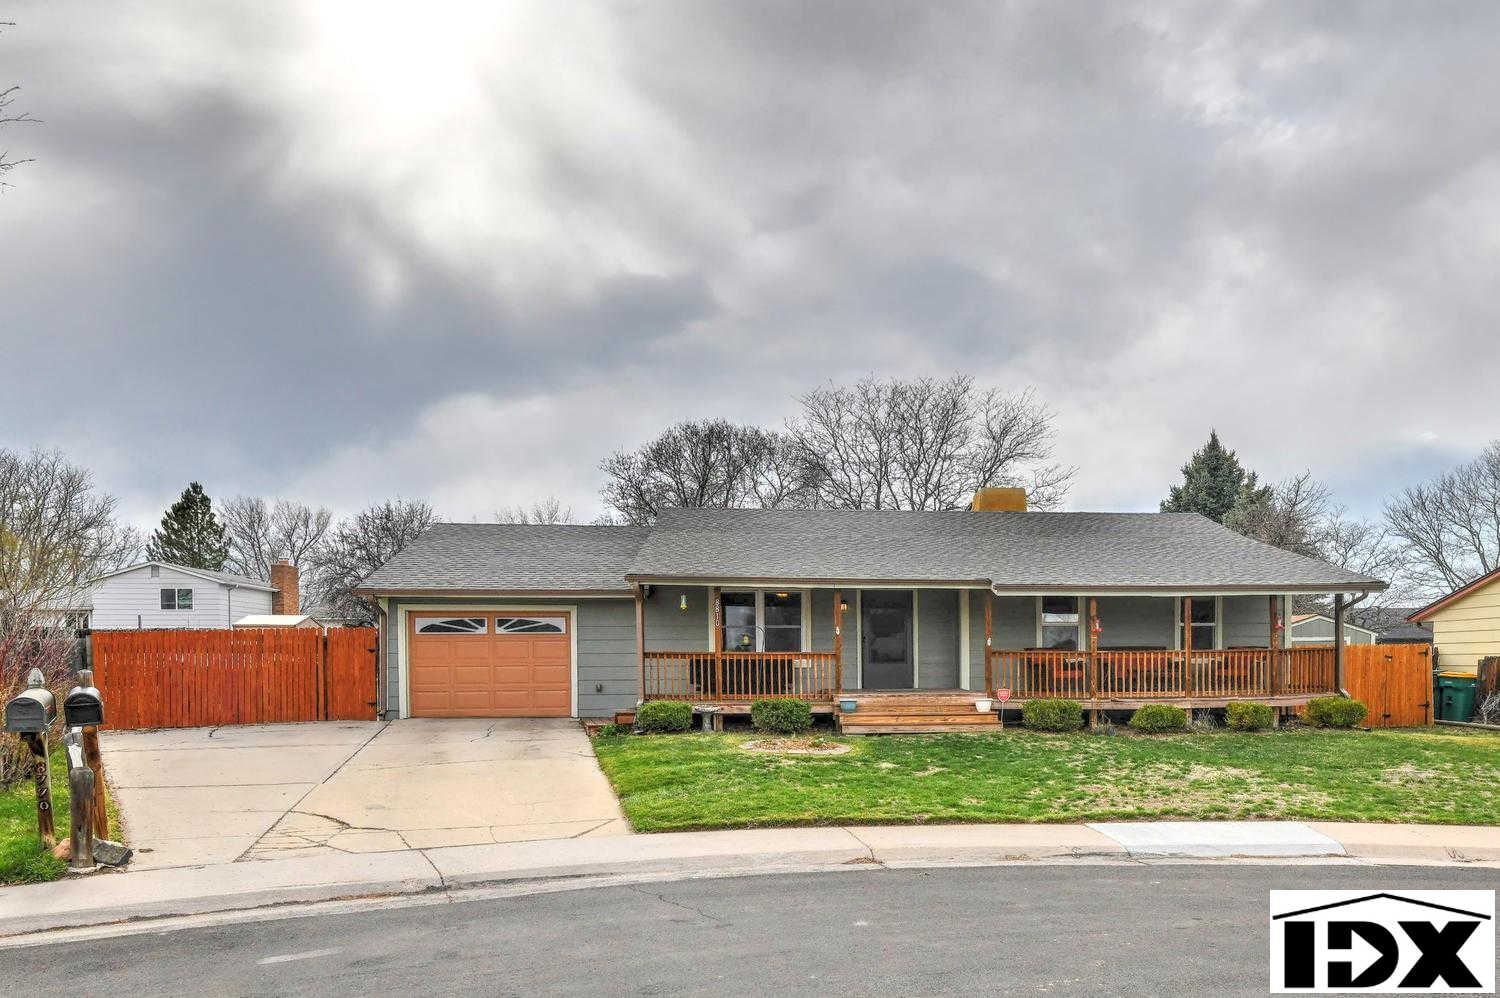 8810 West 92nd Place, Westminster, CO 80021 now has a new price of $380,000!